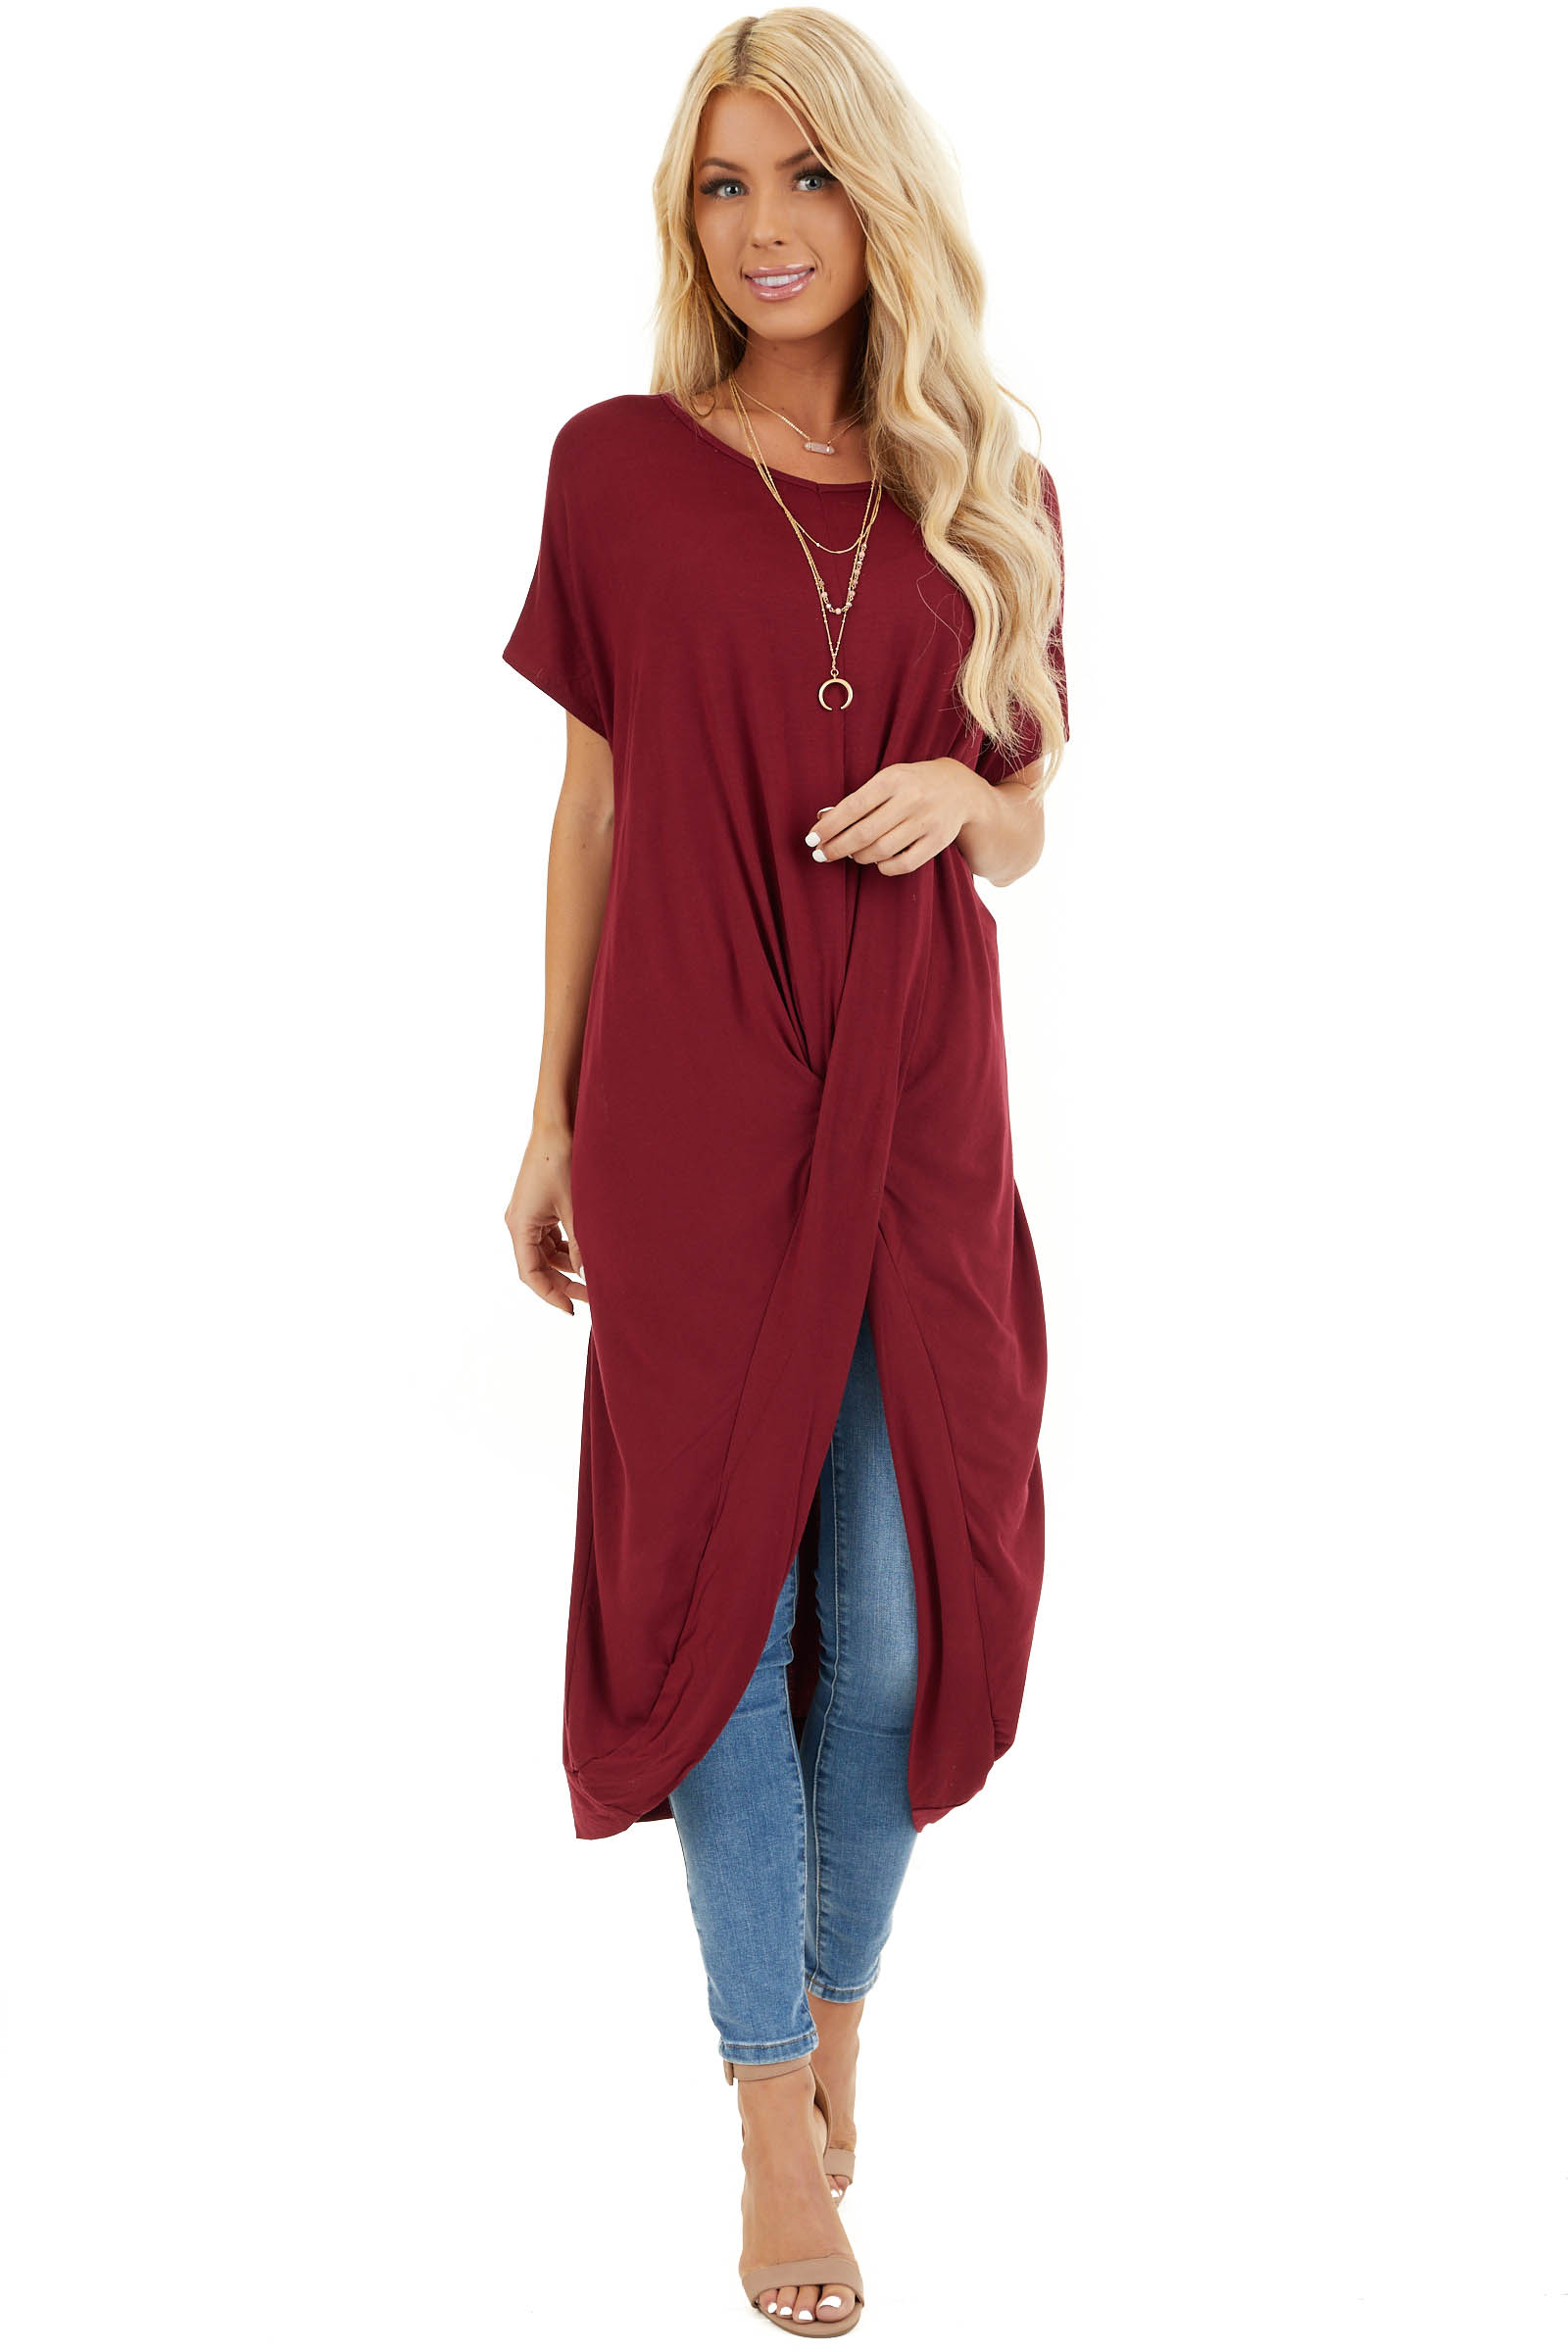 Burgundy Short Sleeve High Low Top with Twist Detail front full body